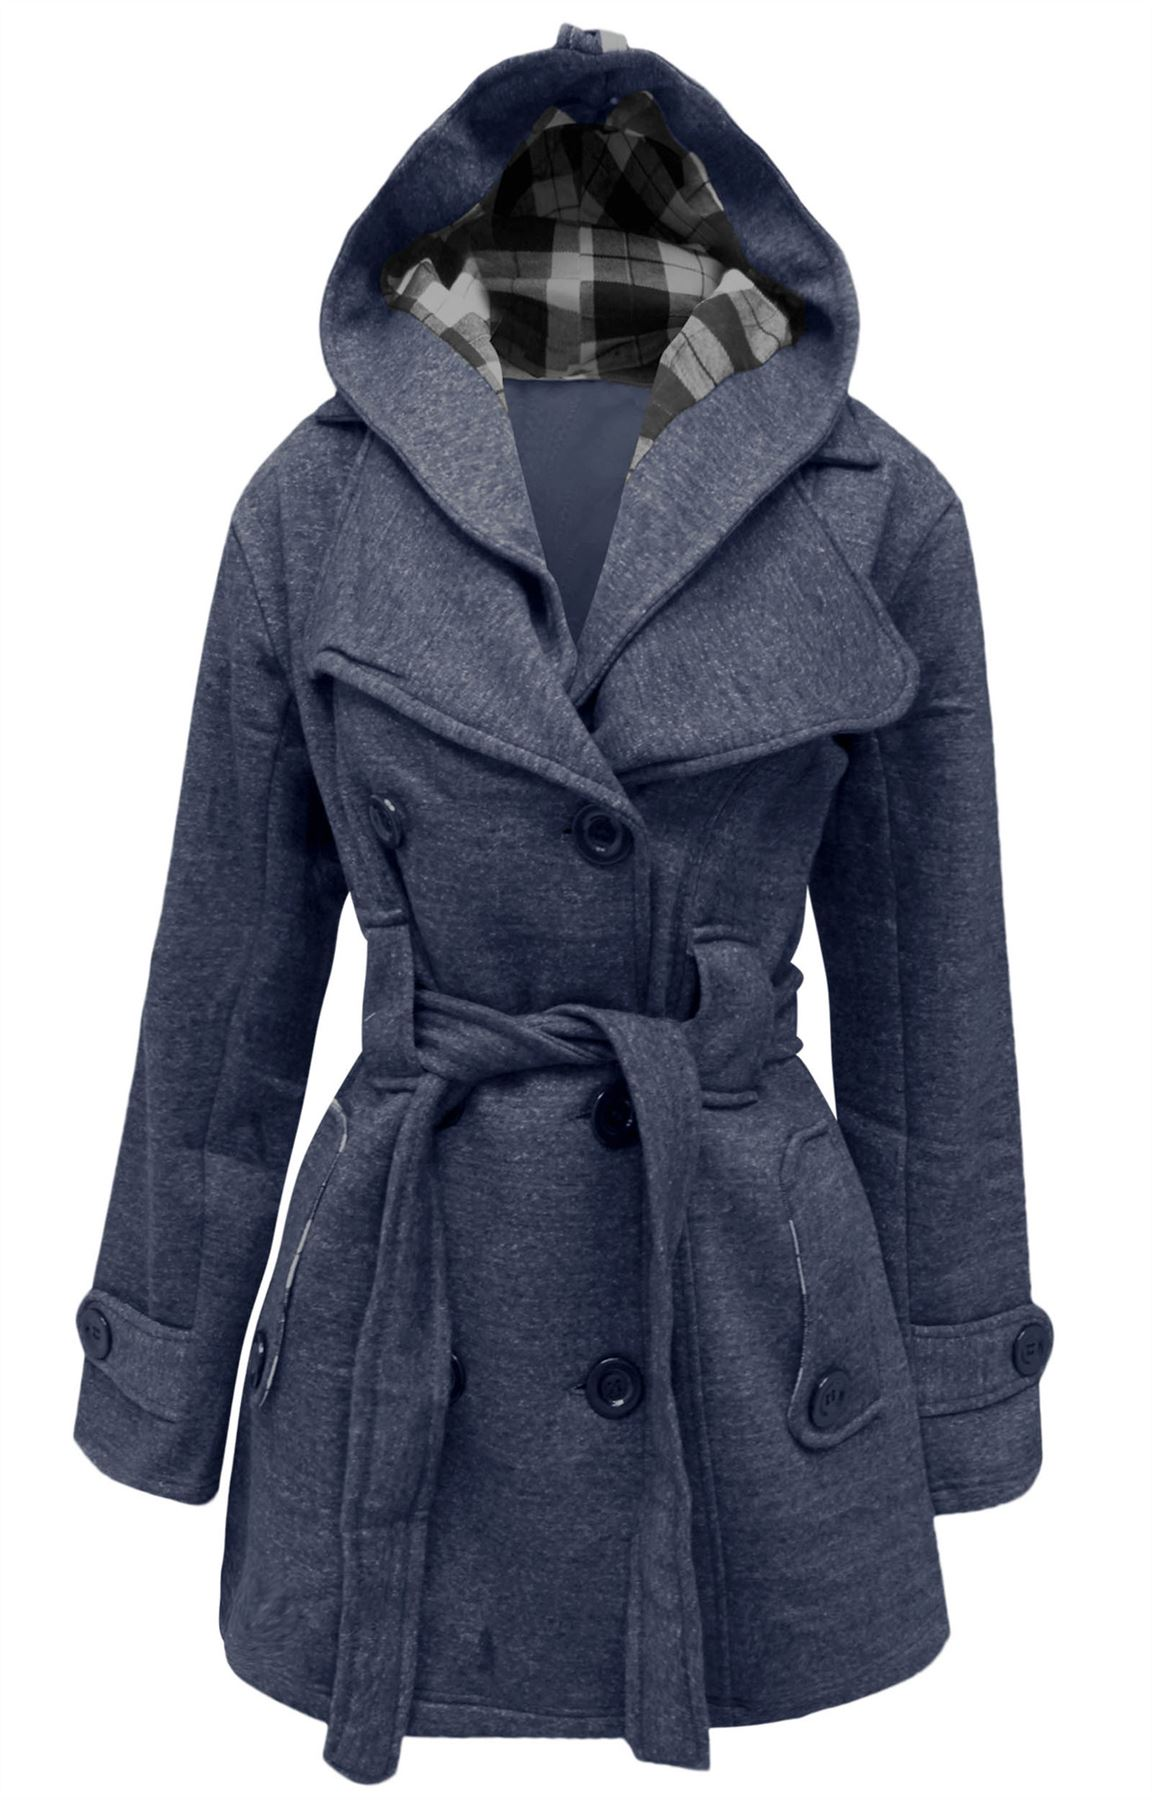 Find great deals on eBay for womens coats 26/ Shop with confidence. Skip to main content. eBay: New Listing New! $90 Lane Bryant Sleeveless Trench Coat Women's Plus Size 22/24 26/28 Navy. Brand New. $ Buy It Now +$ shipping. WOMENS HOODED COAT LADIES PLUS SIZE BELTED FLEECE PARKA STYLE WINTER JACKET NEW.